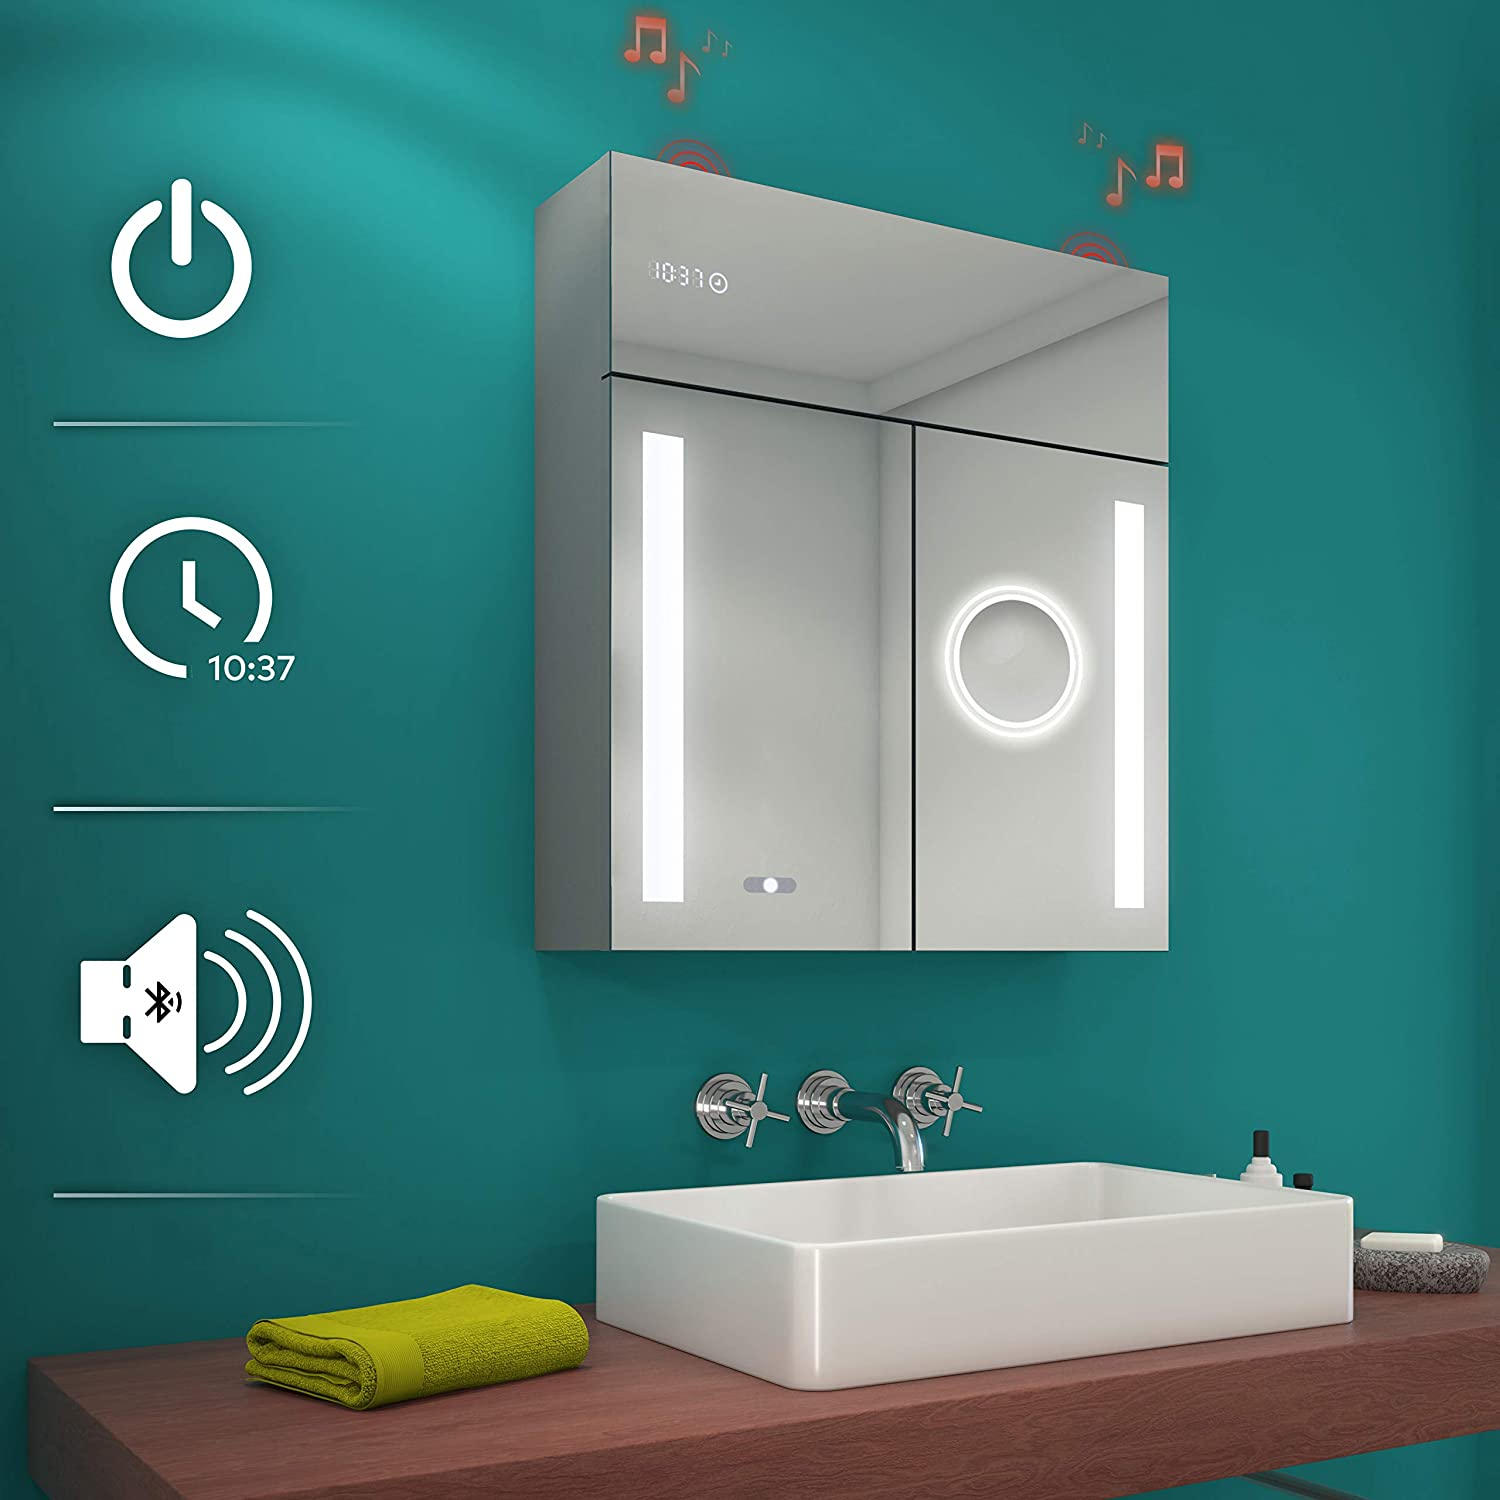 Buy Artforma Cabinet Illuminated Custom Bathroom Mirror Cabinets With Doors Width 26 Inch X Height 28 3 Inch Wall Mounted Bathroom Cabinet Additionals Online In Germany B083fmxsvl